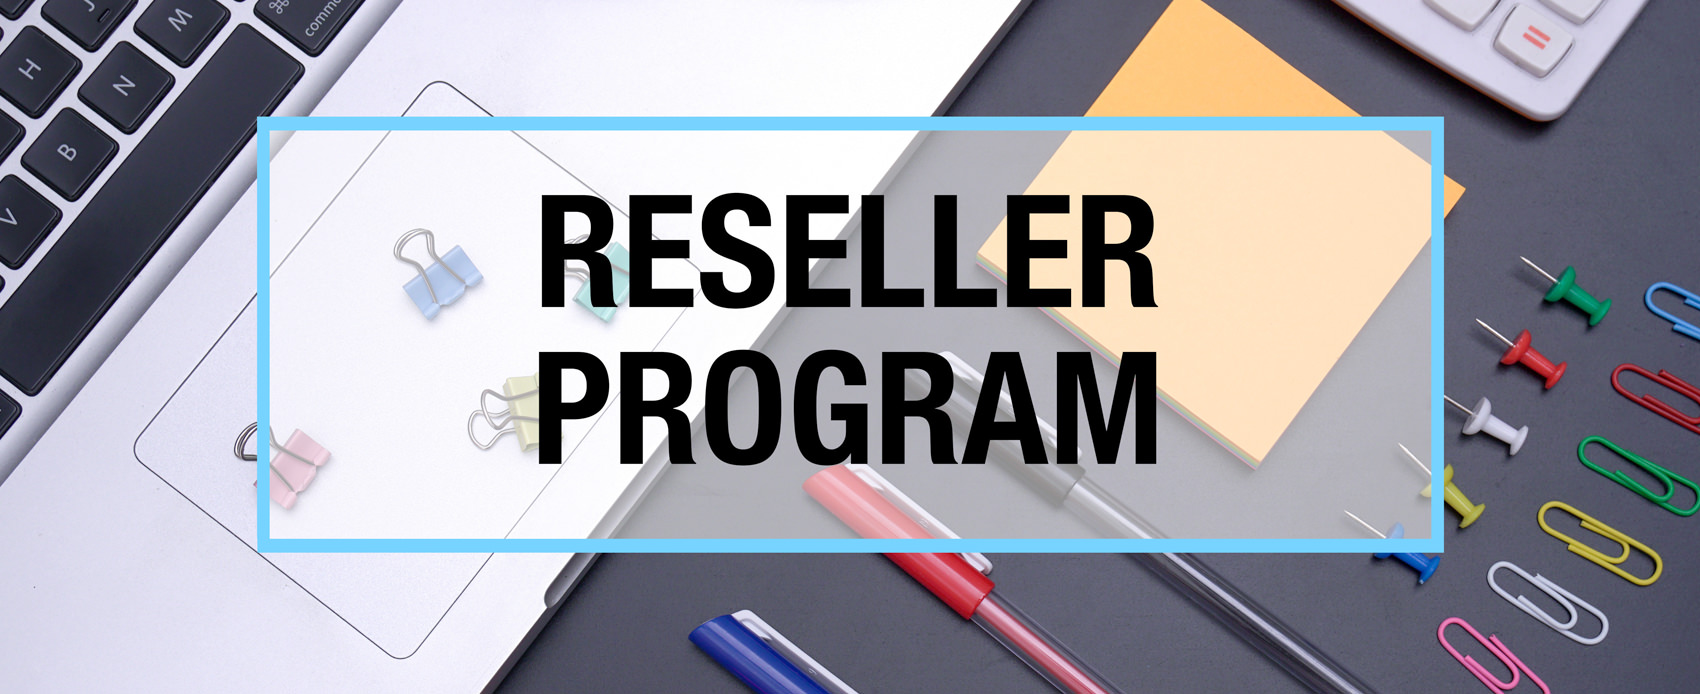 program-reseller-smarthafiz